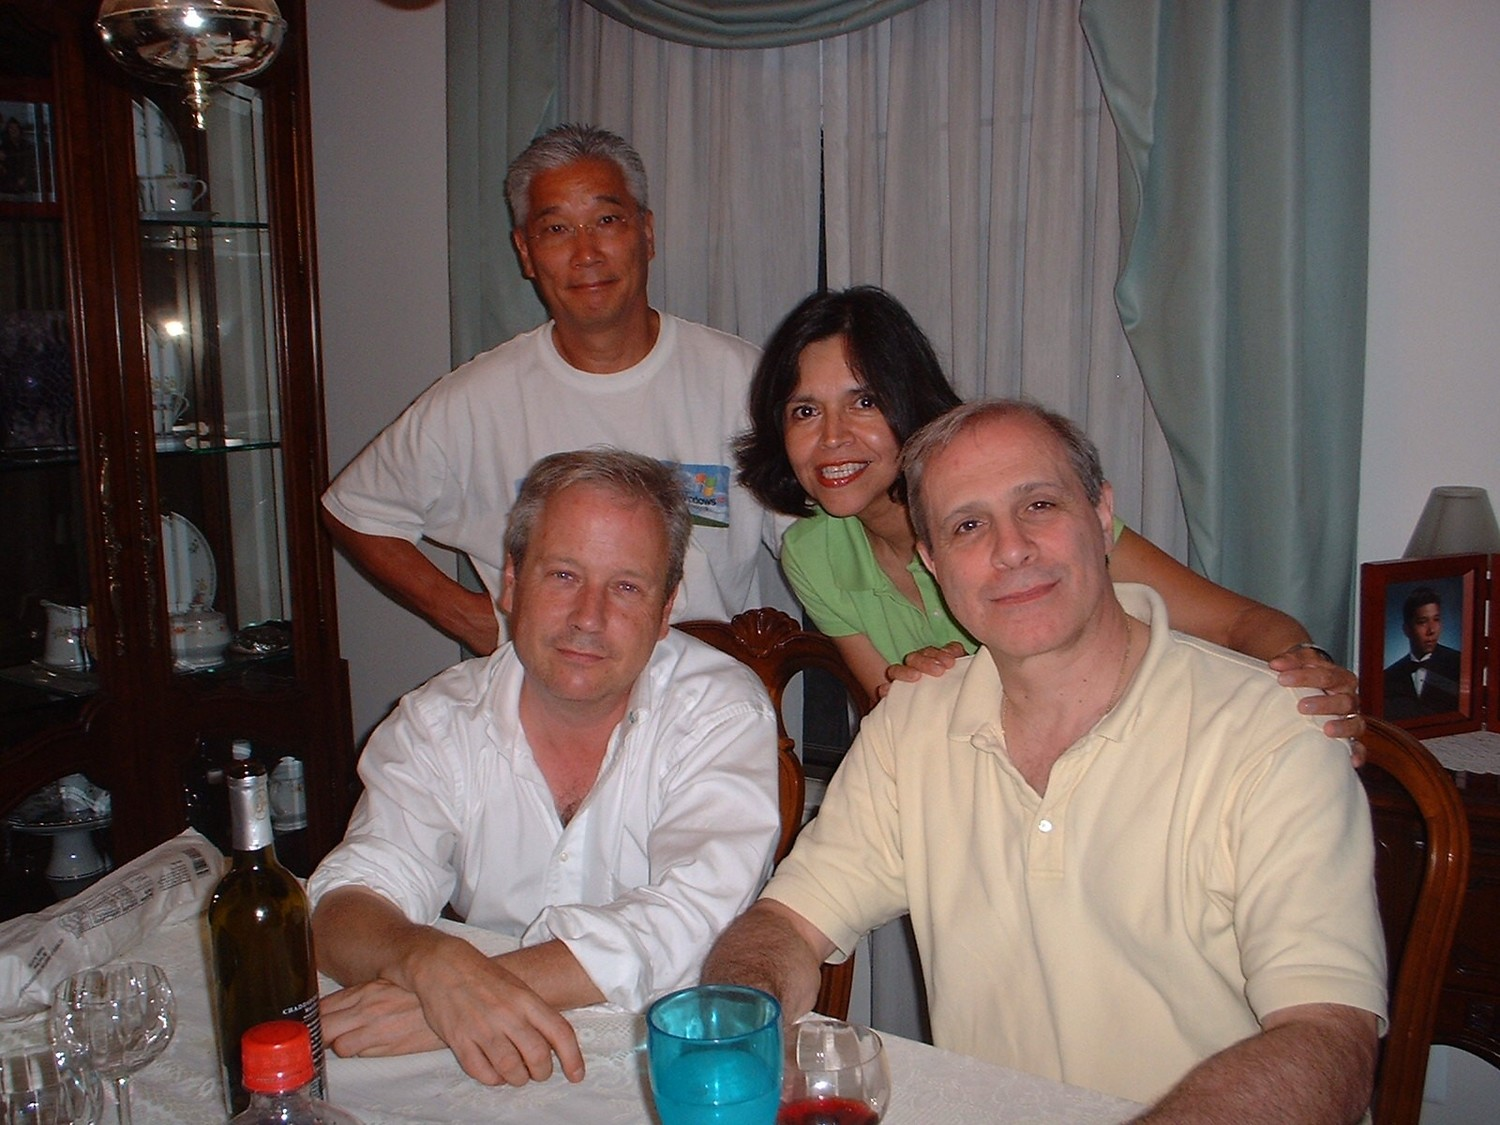 Leonard Durso, second from left, grew up in Lynbrook with his foster brother Johnny Ding, left, and his brother Robert McMannis. Also pictured is his sister-in-law Cecelia Ding.